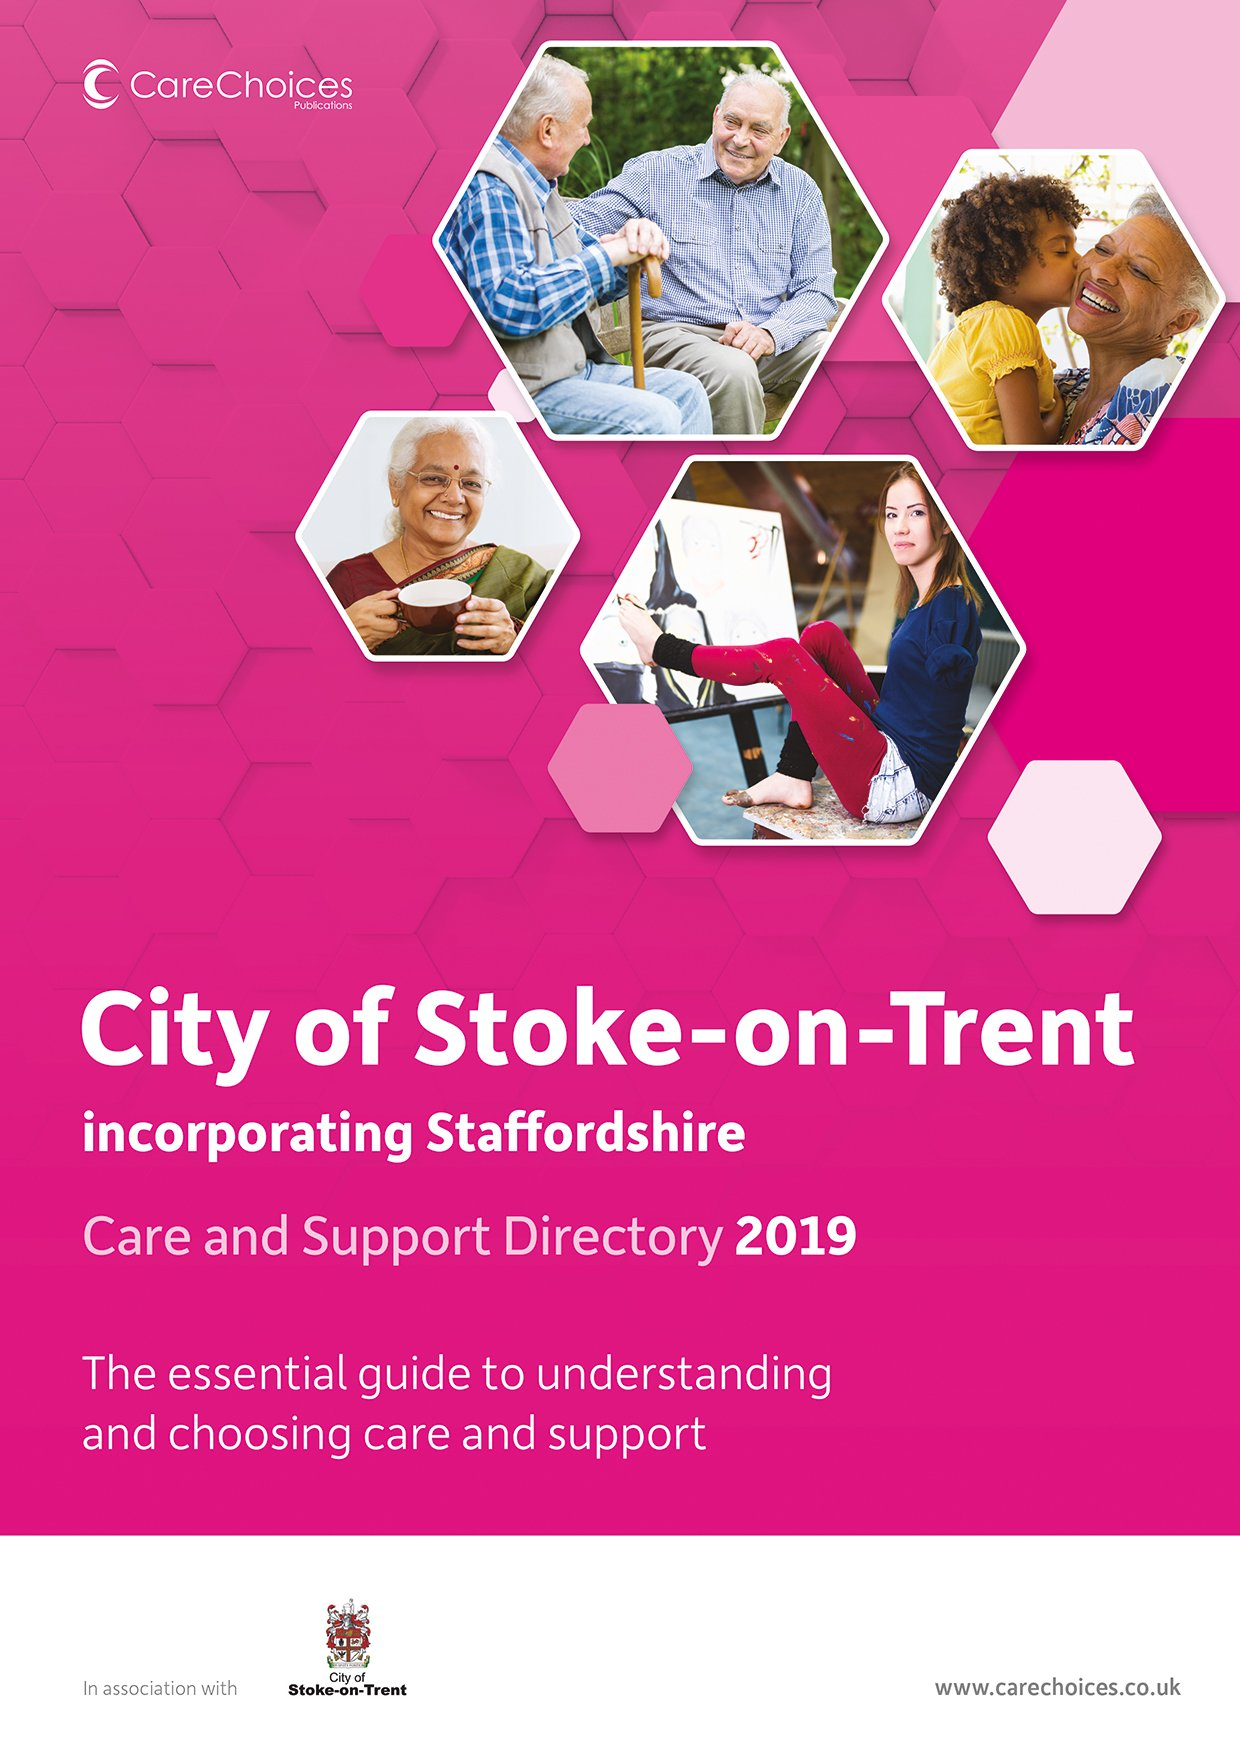 ef5b50288 City of Stoke on Trent (incorporating Staffordshire) Care Services  Directory - Care Choices